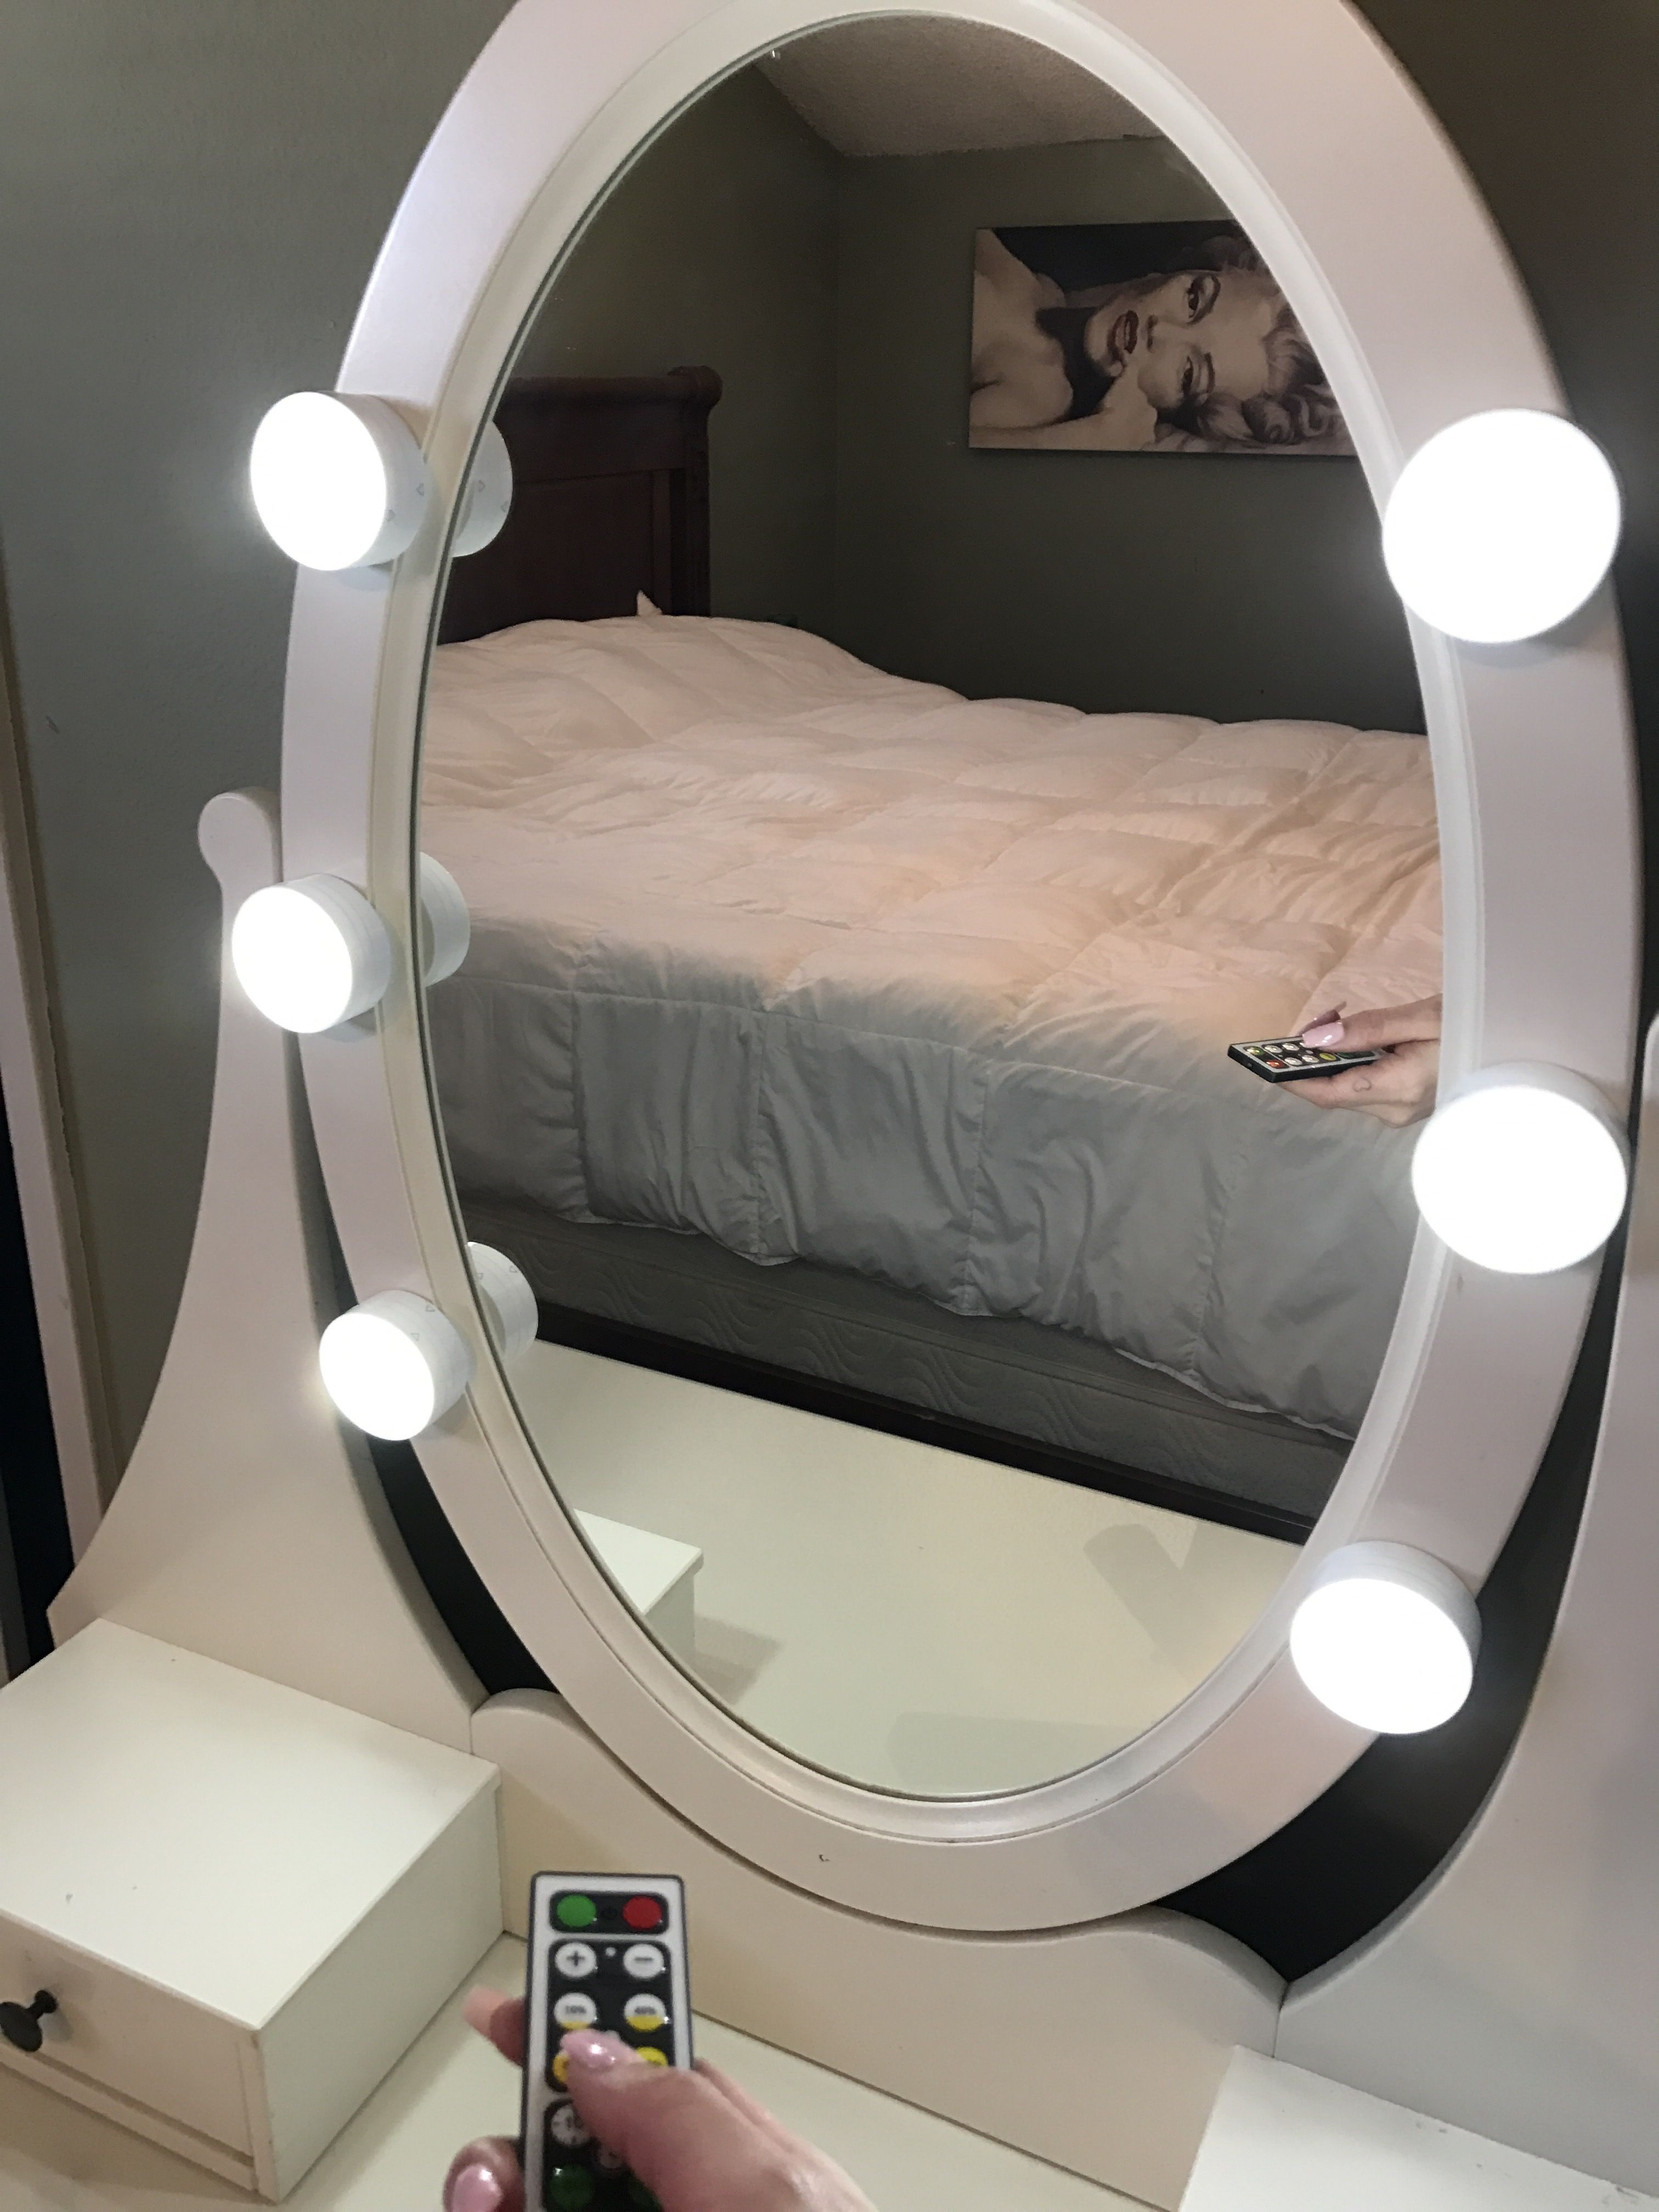 together makeup leave lights glorious mirrors comment lighting wood reply a and plus bathroom with luxurious the large teak vanity cancel three